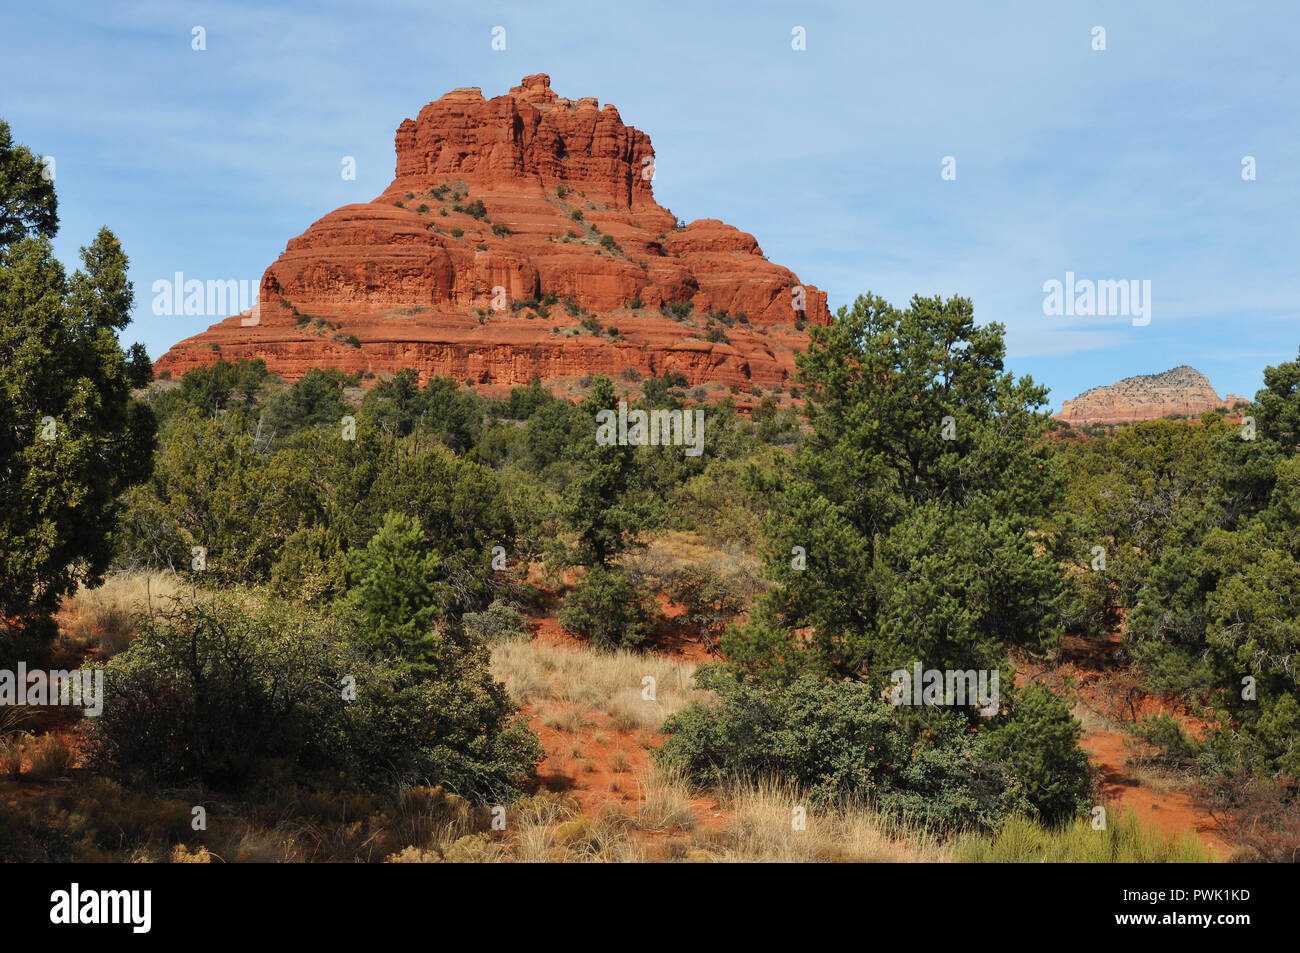 Bell Rock is one of the most popular of the red rock formations in the Sedona, Arizona area, and is considered one of its vortex sites. Stock Photo